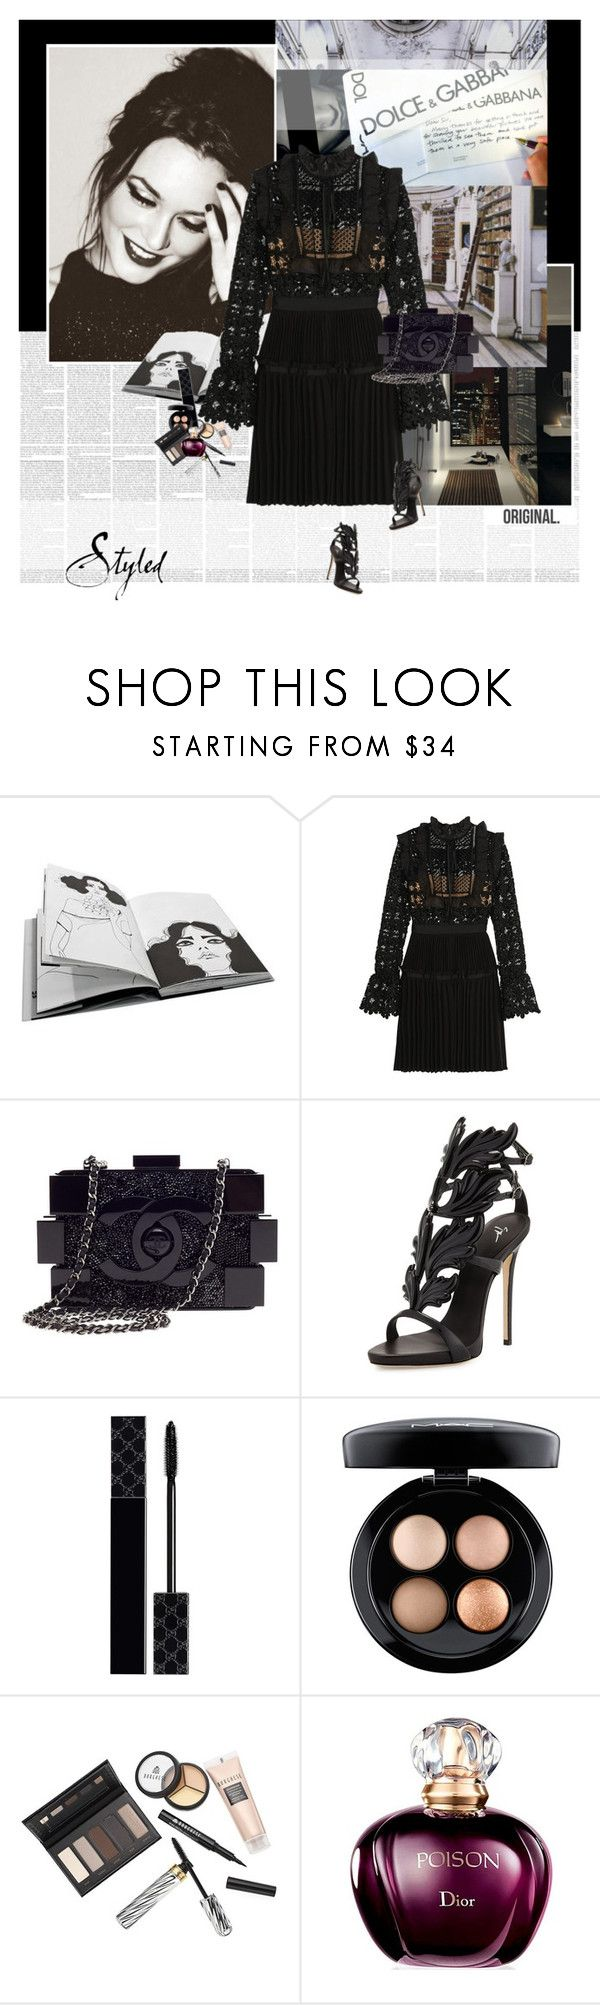 """""""Leighton Meester"""" by stephaniee90 ❤ liked on Polyvore featuring Spy Optic, GESTALTEN, self-portrait, Chanel, Giuseppe Zanotti, Gucci, MAC Cosmetics and Borghese"""